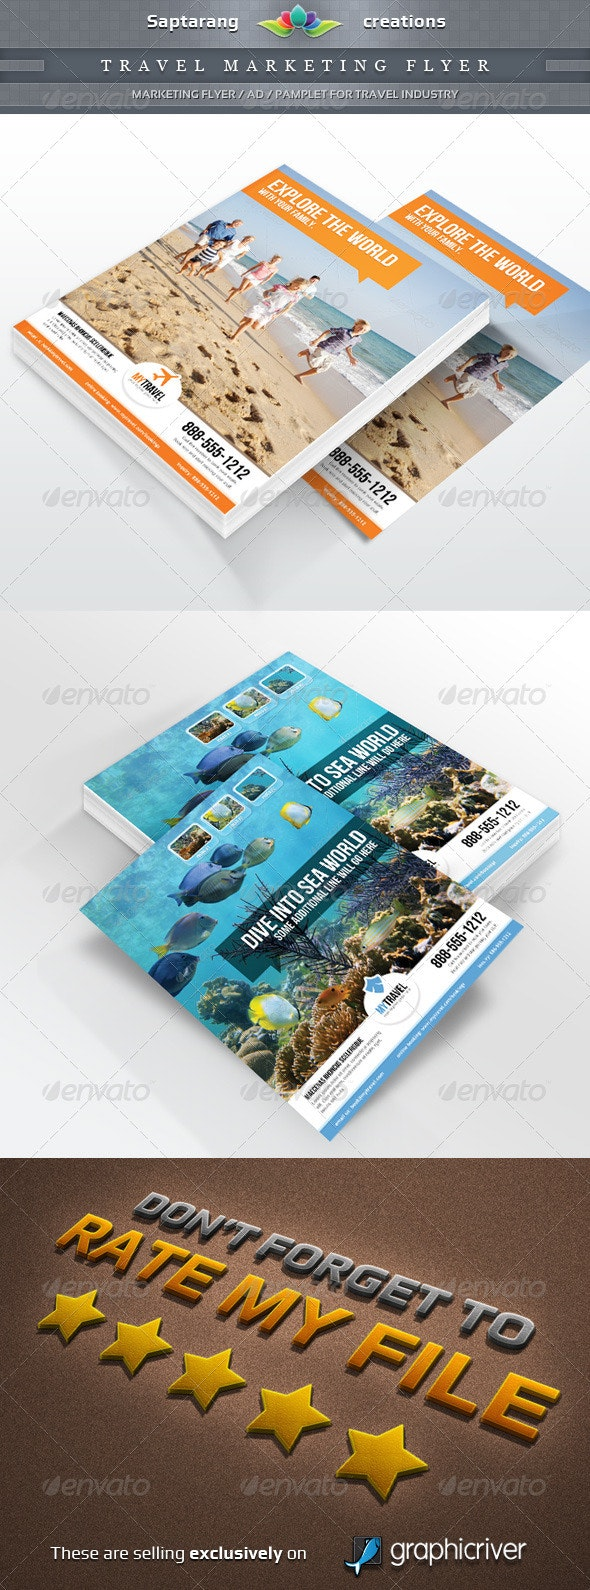 Travel Agency Marketing Flyer - Corporate Flyers